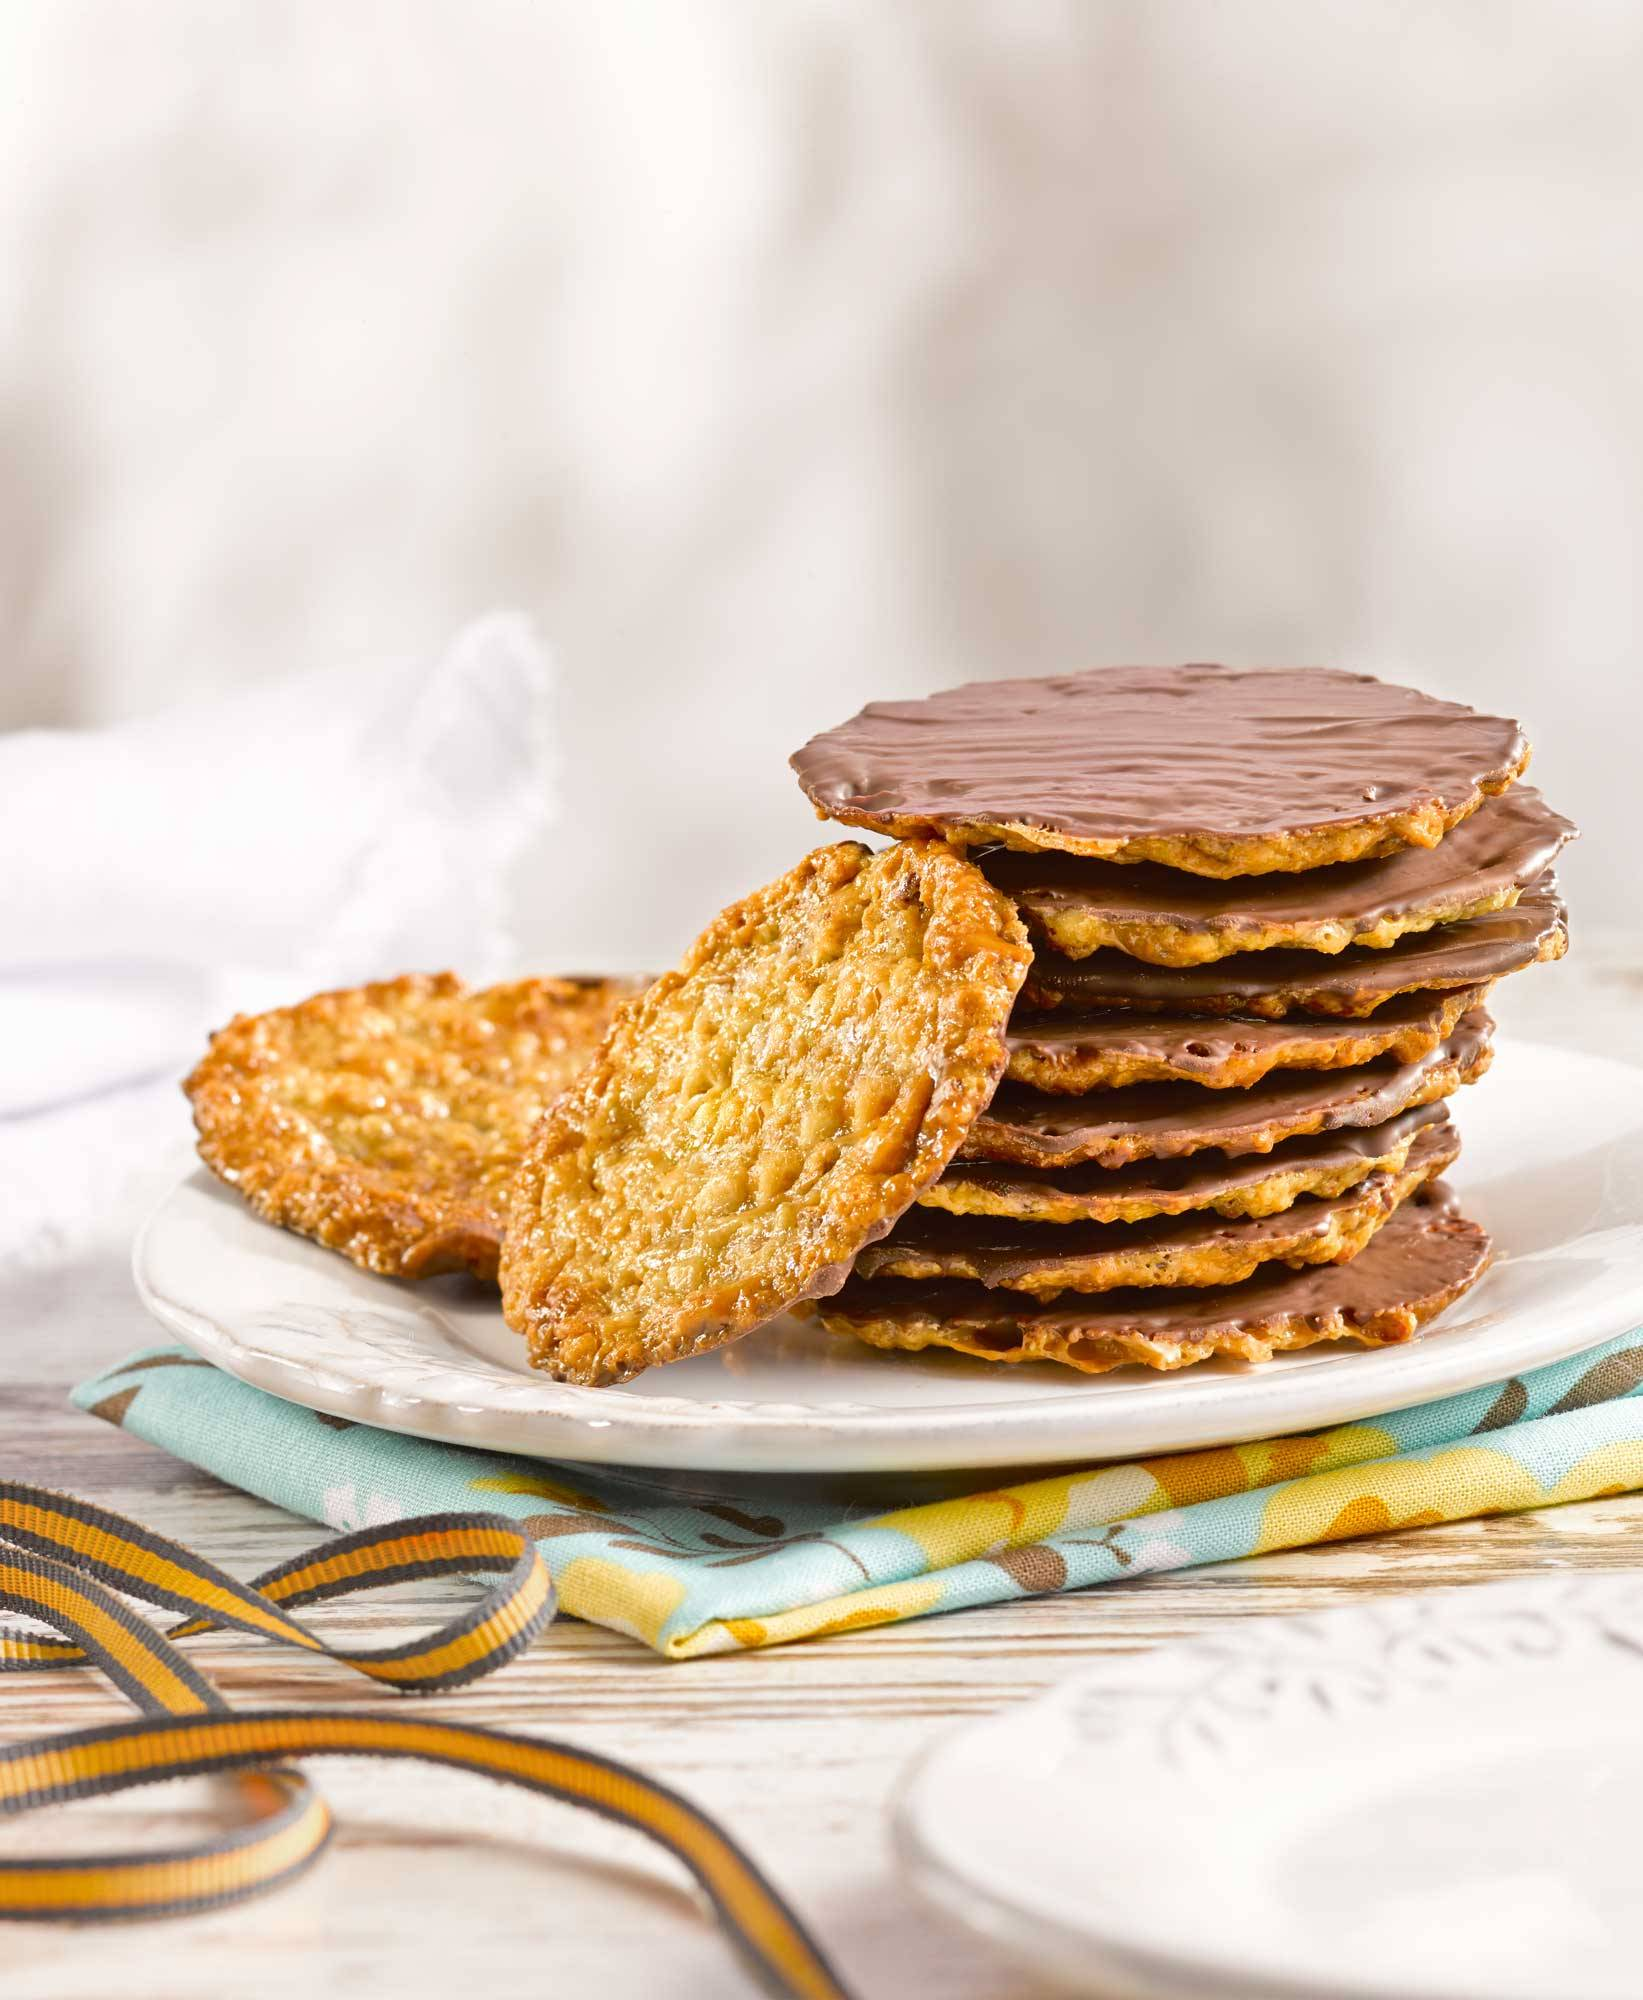 receta-galletas-moscovitas-almendra-chocolate 00405098